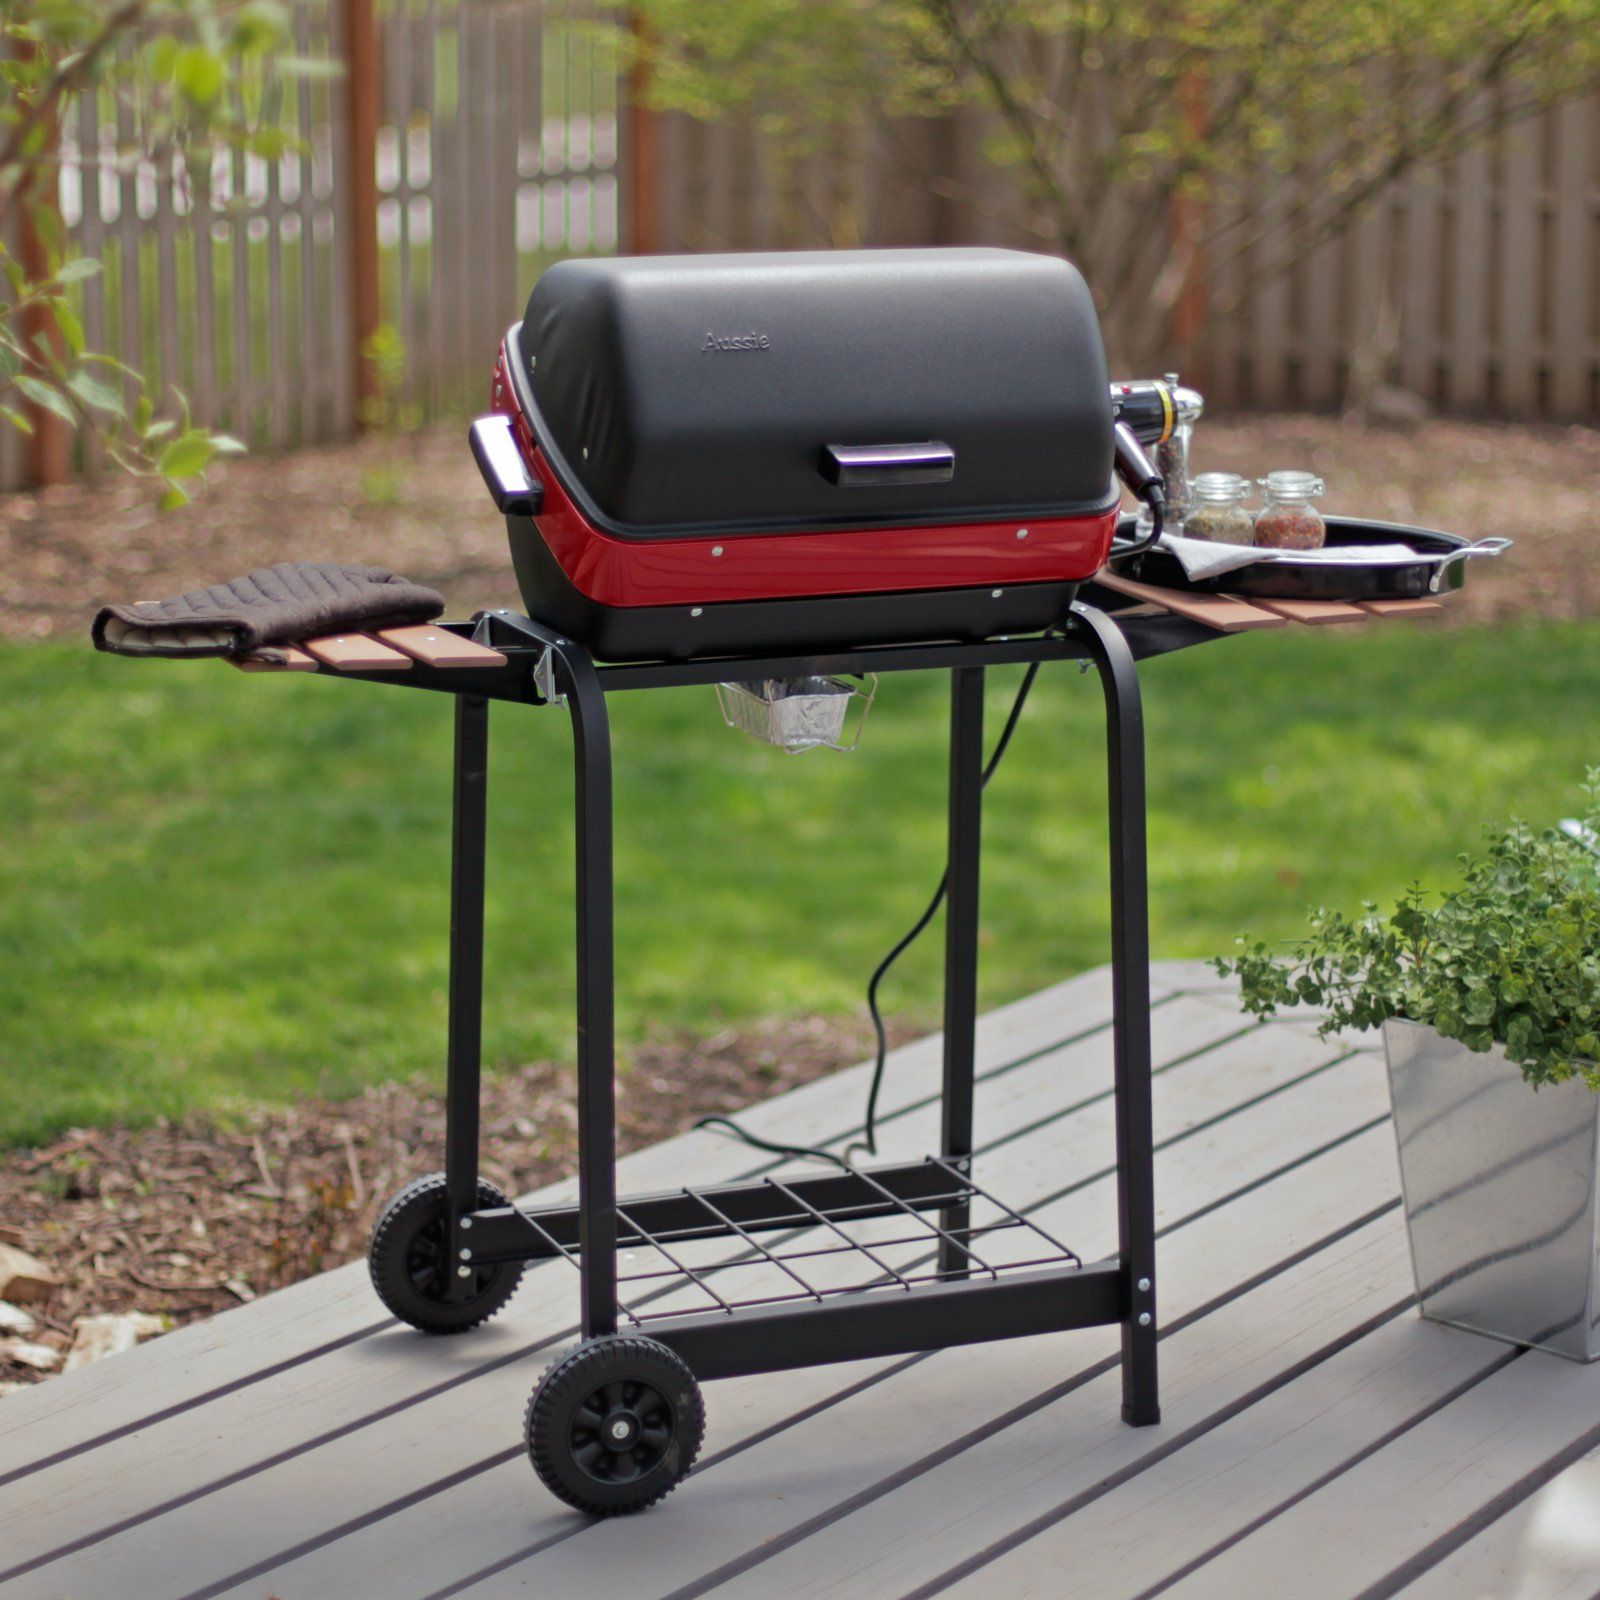 Meco Deluxe Electric Cart Grill Electric grill, Grilling